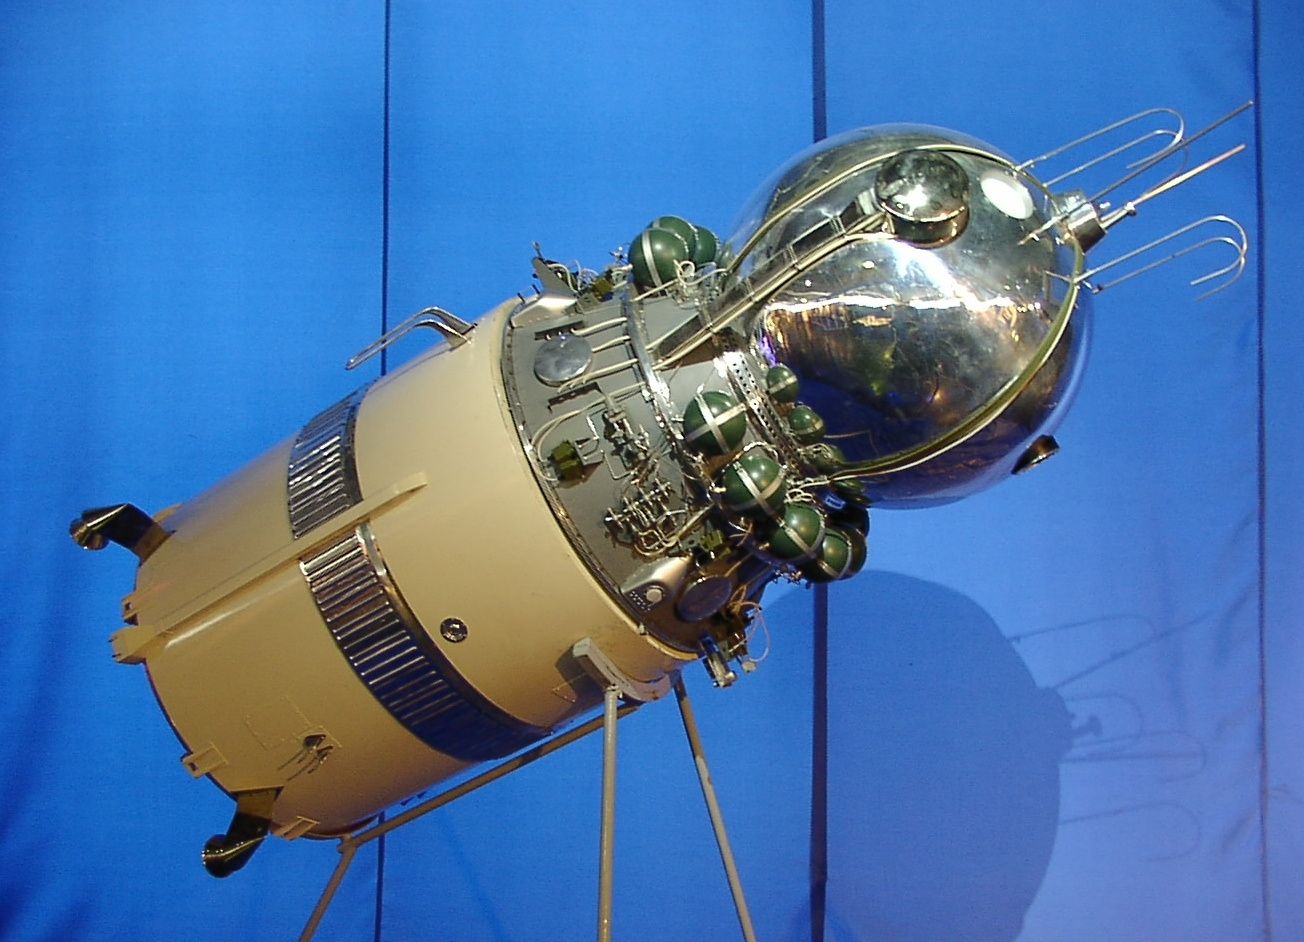 Laika Model http://commons.wikimedia.org/wiki/File:Vostok_spacecraft.jpg